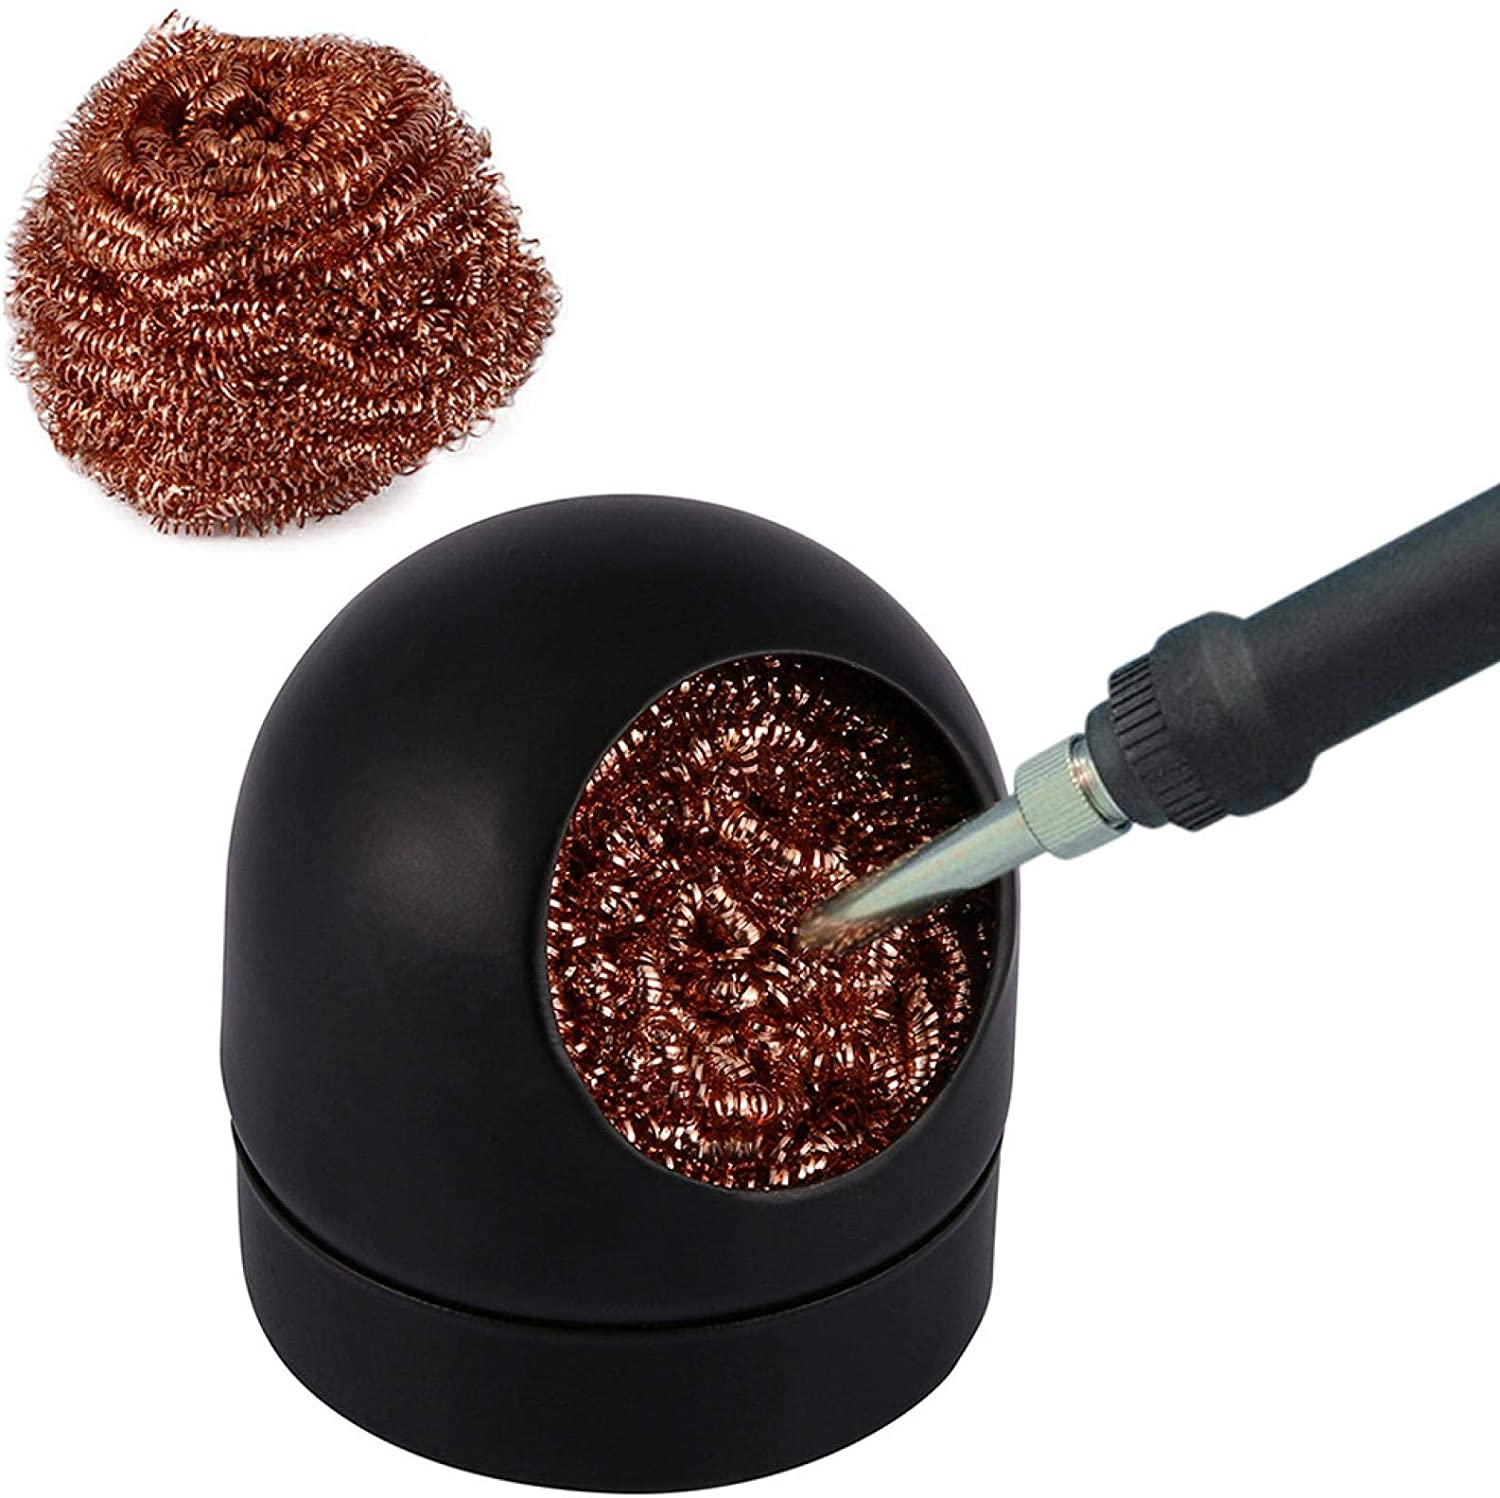 Iron Tip Cleaner,Brass Cleaner Wire Ball Cleaning Wire and Holder for Cleaning Soldering Head Steel Irons Tip Black